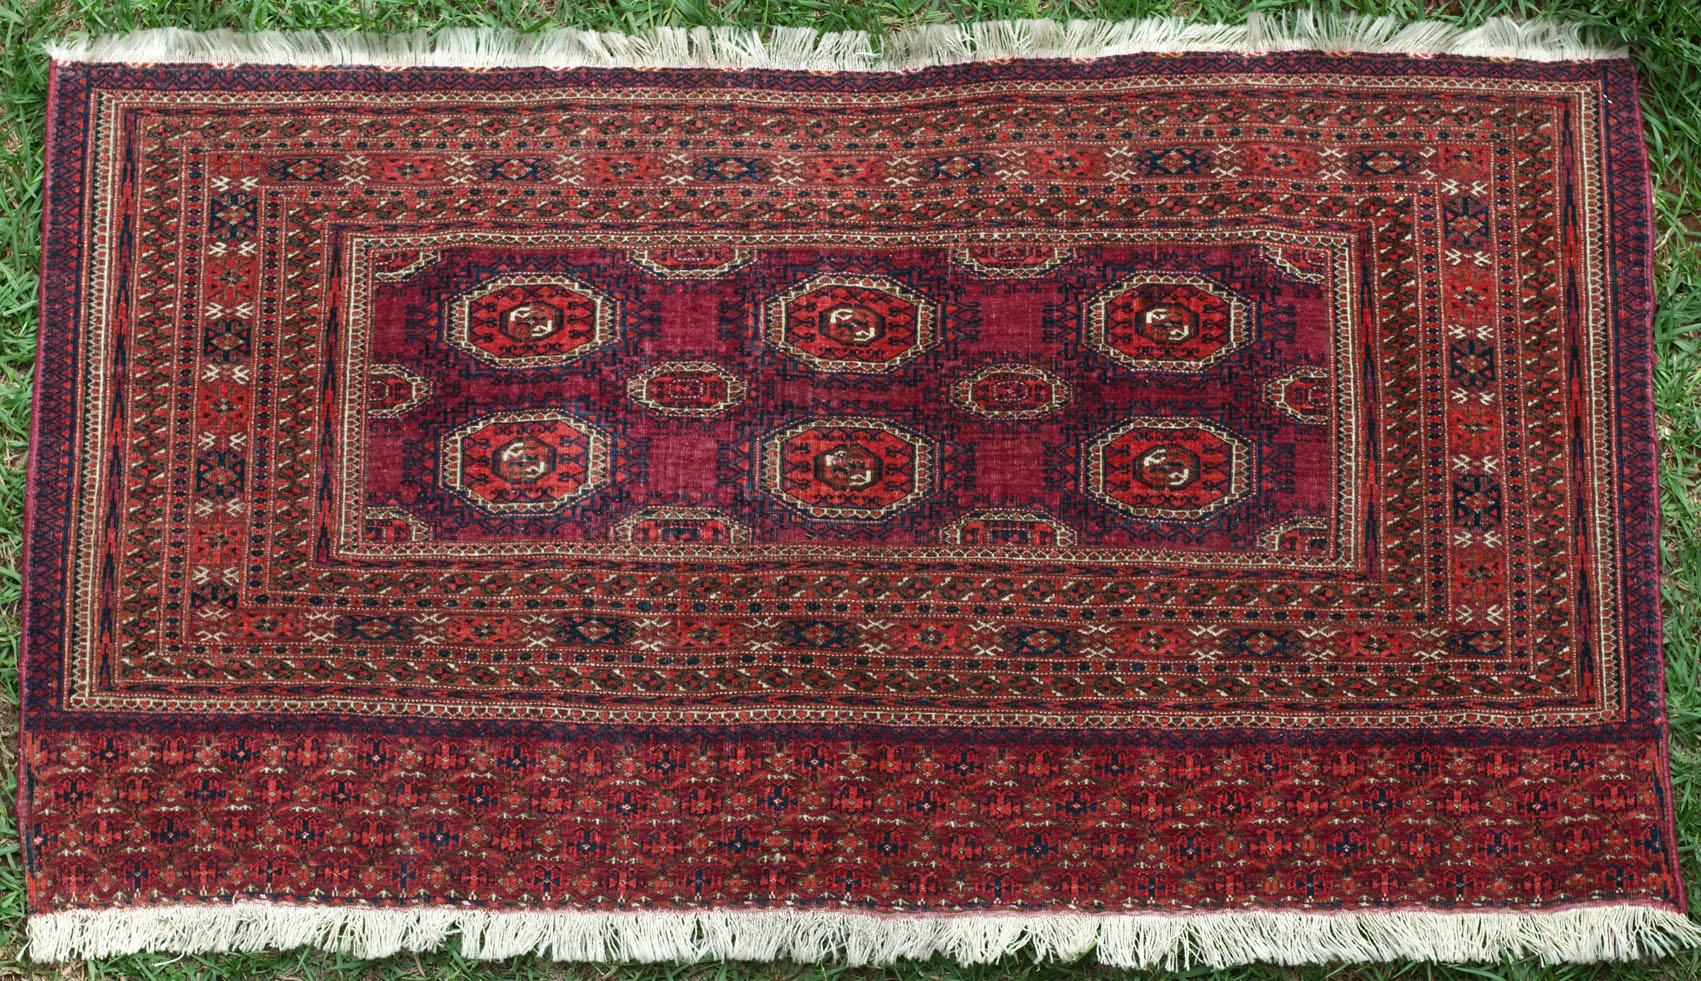 672b Another Immaculate Antique Tekke Juval Www